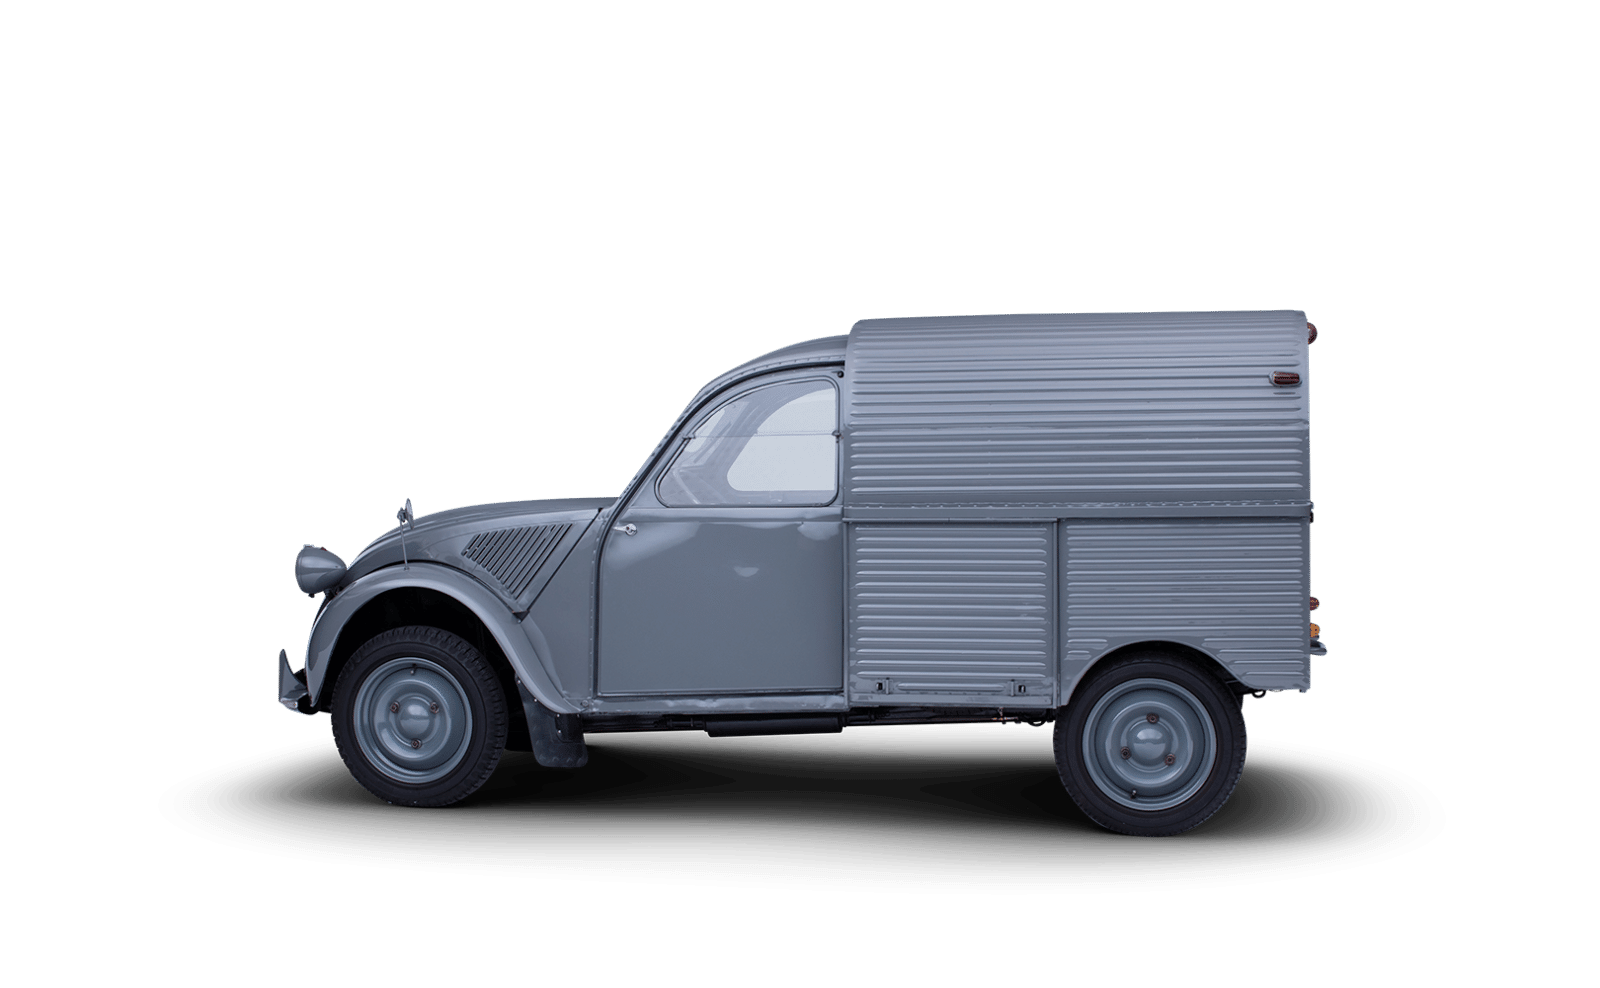 citro u00ebn 2cv mini-van